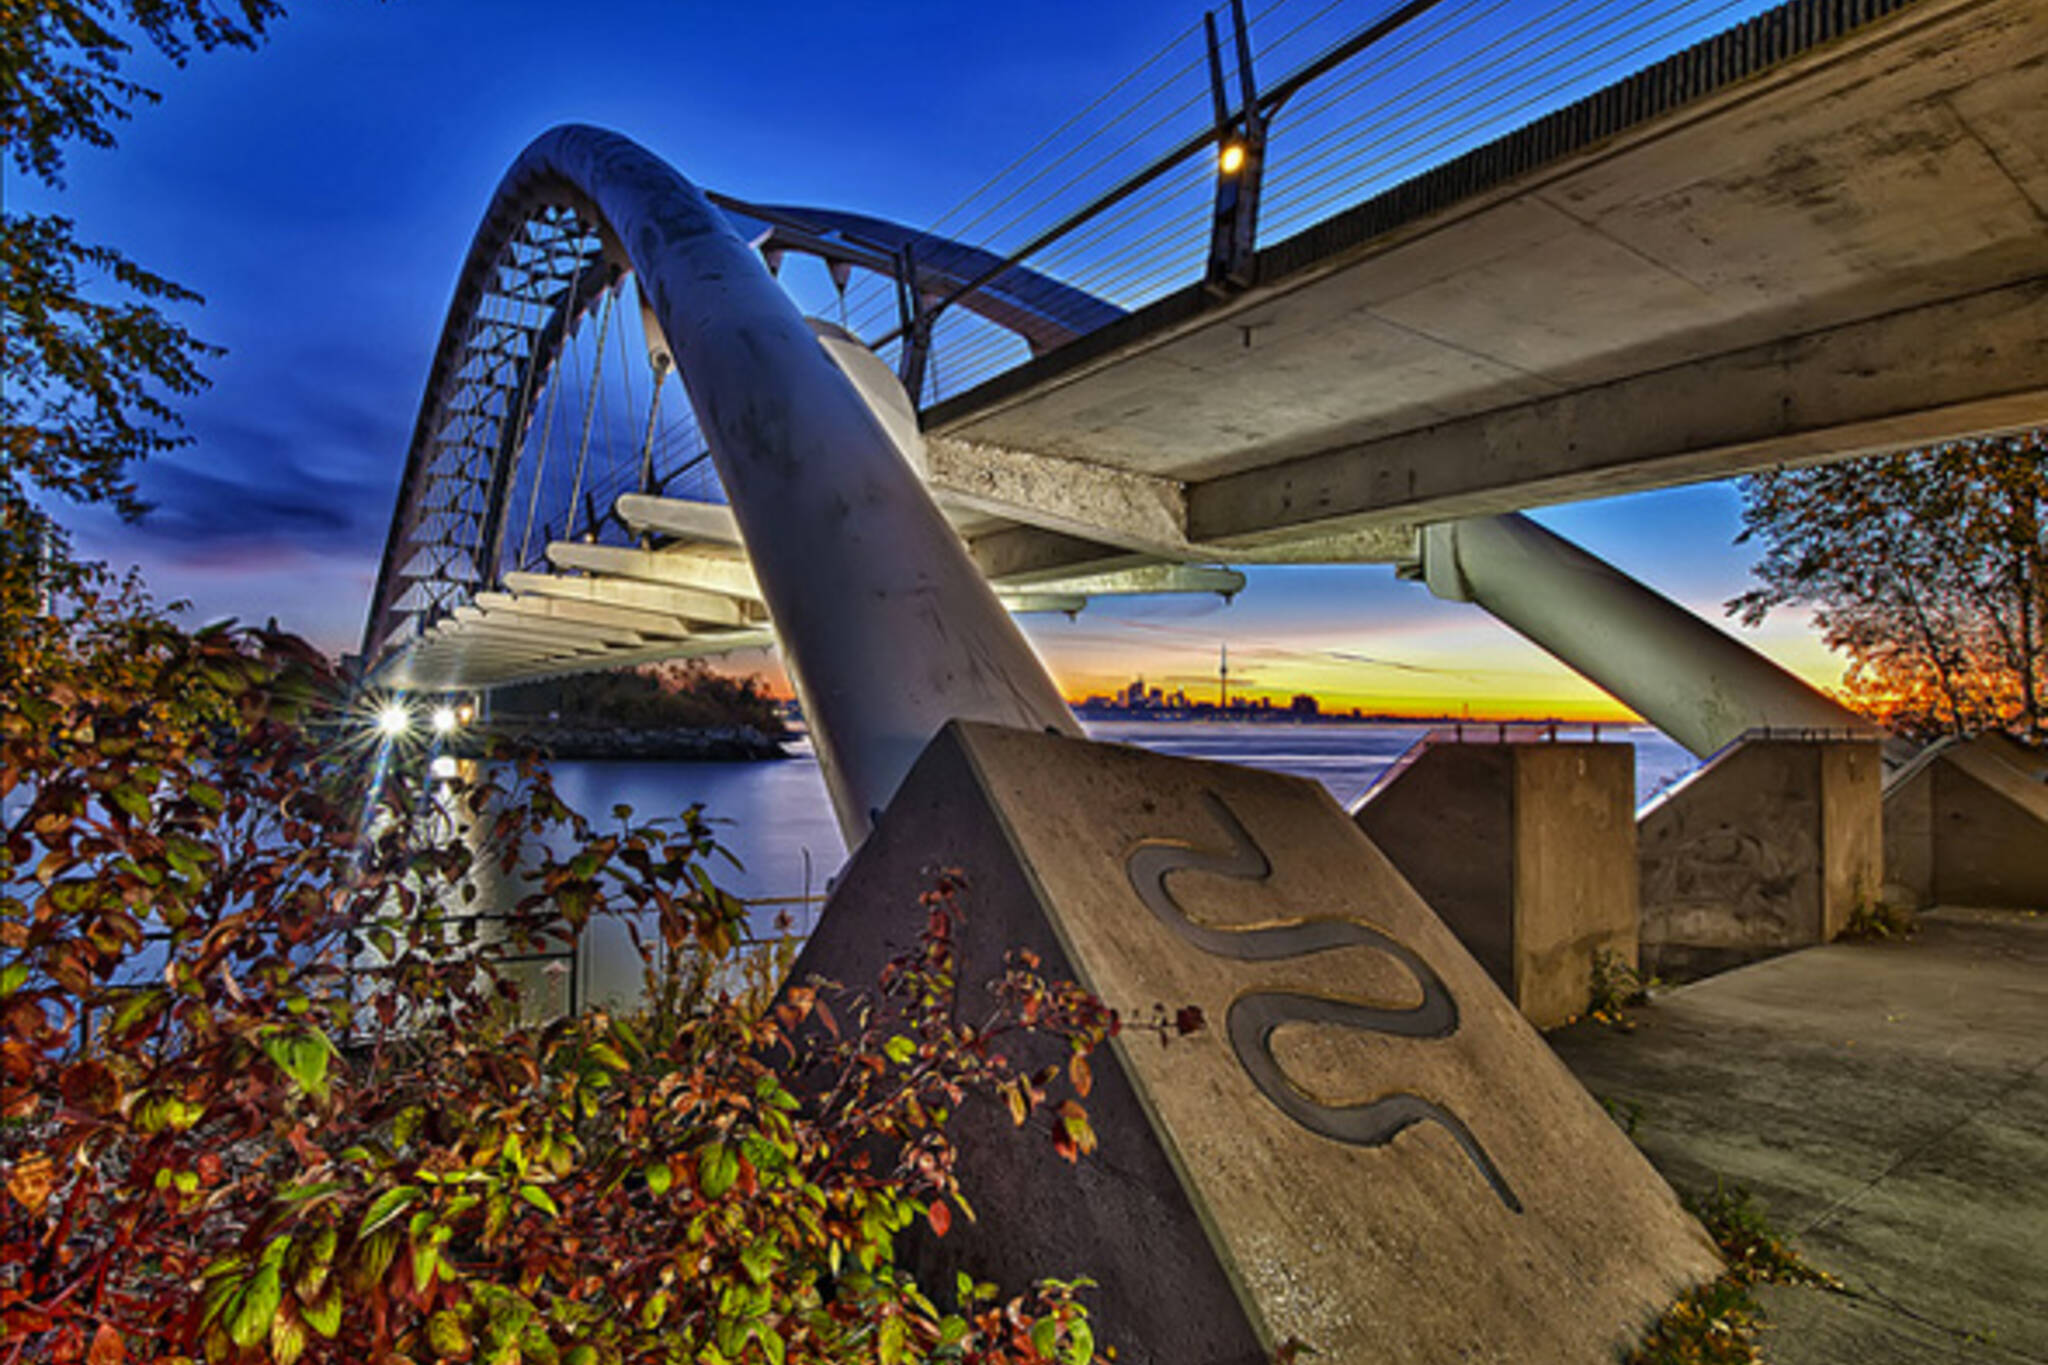 Humber Bay Bridge